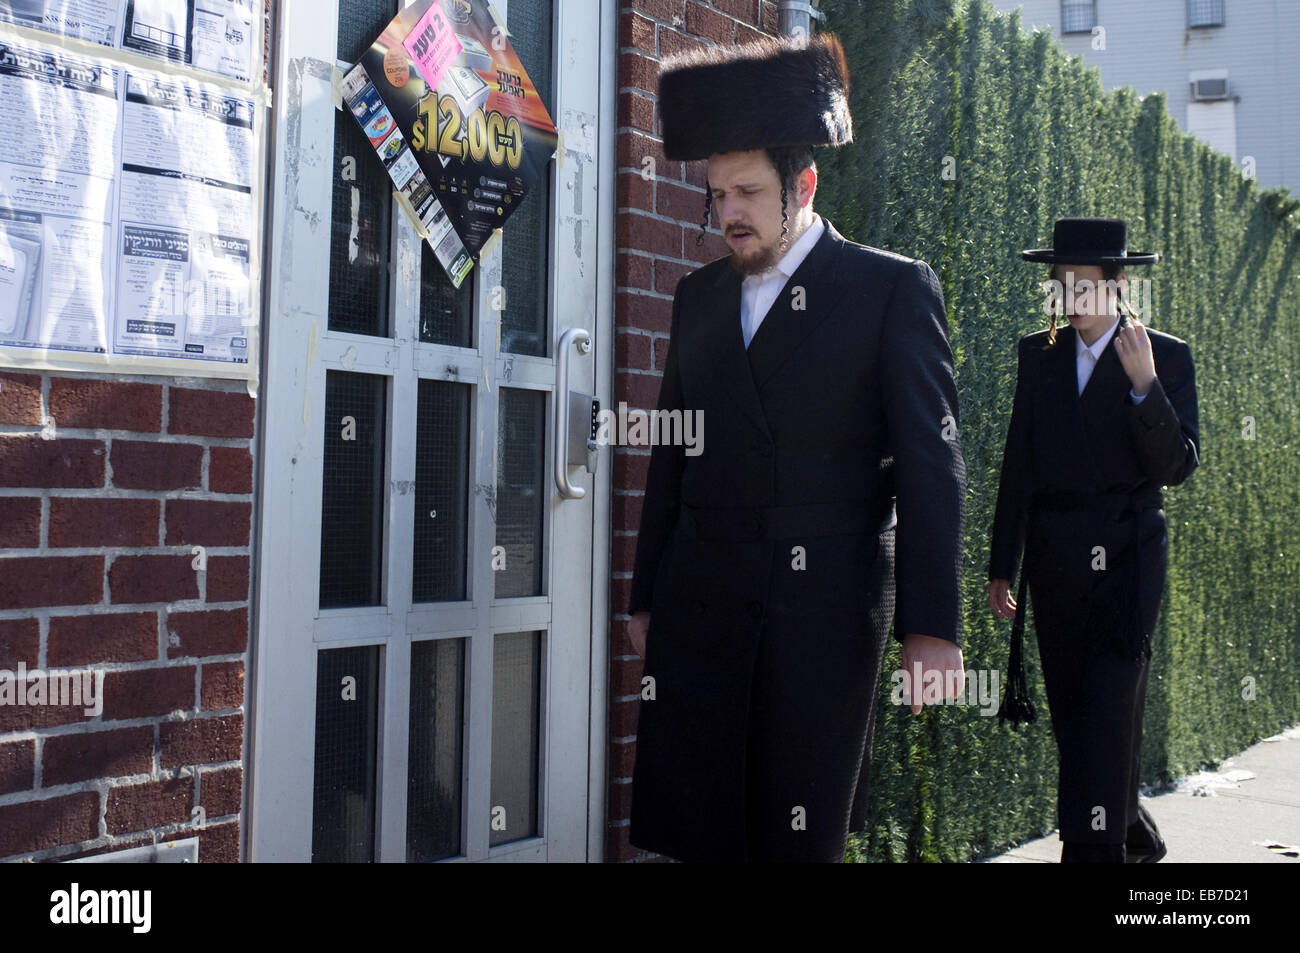 jewish single women in williamsburg Williamsburg is inhabited by tens of thousands of hasidic jews of various groups, and contains the headquarters of one faction of the satmar hasidic group williamsburg's satmar population numbers about 73,000.